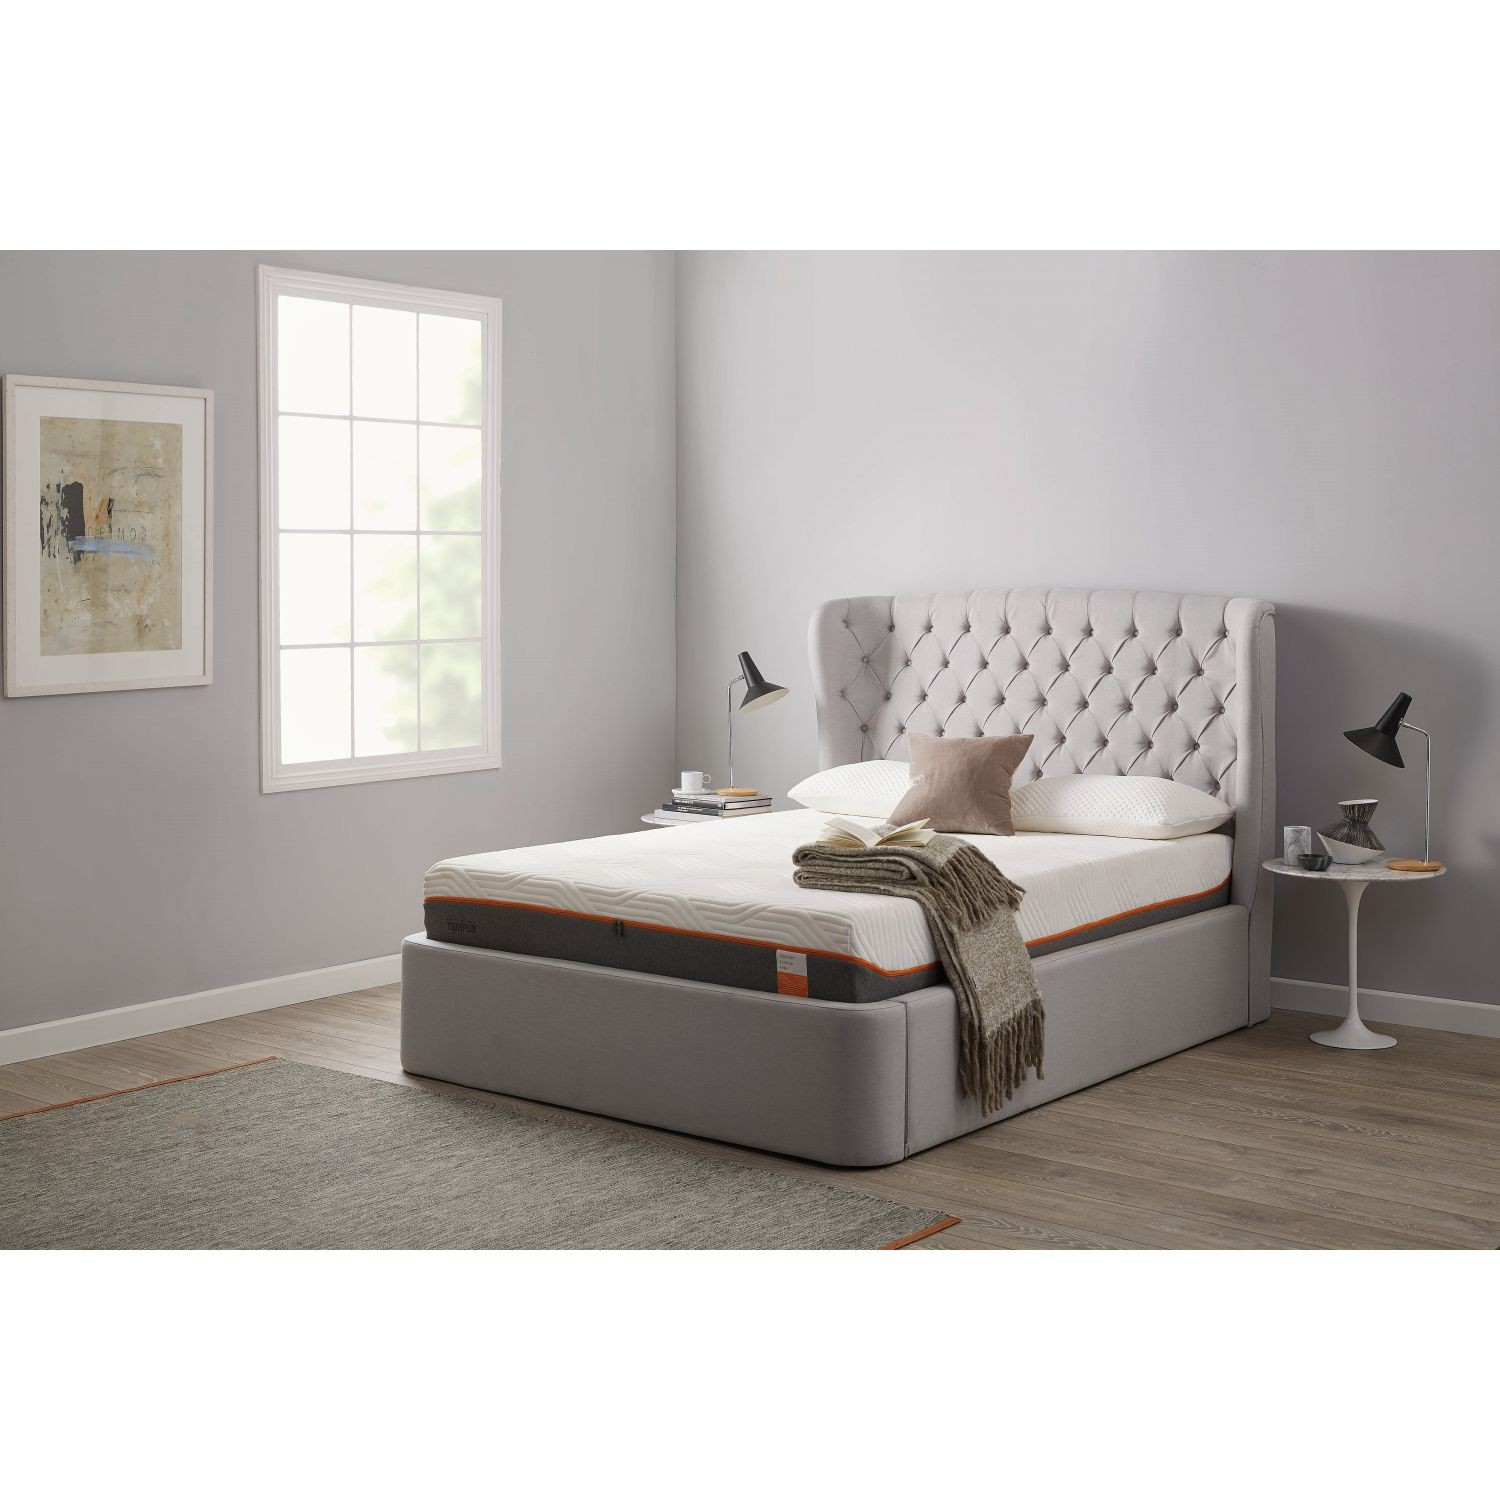 Stupendous Tempur Holcot Ottoman Bed King Gmtry Best Dining Table And Chair Ideas Images Gmtryco